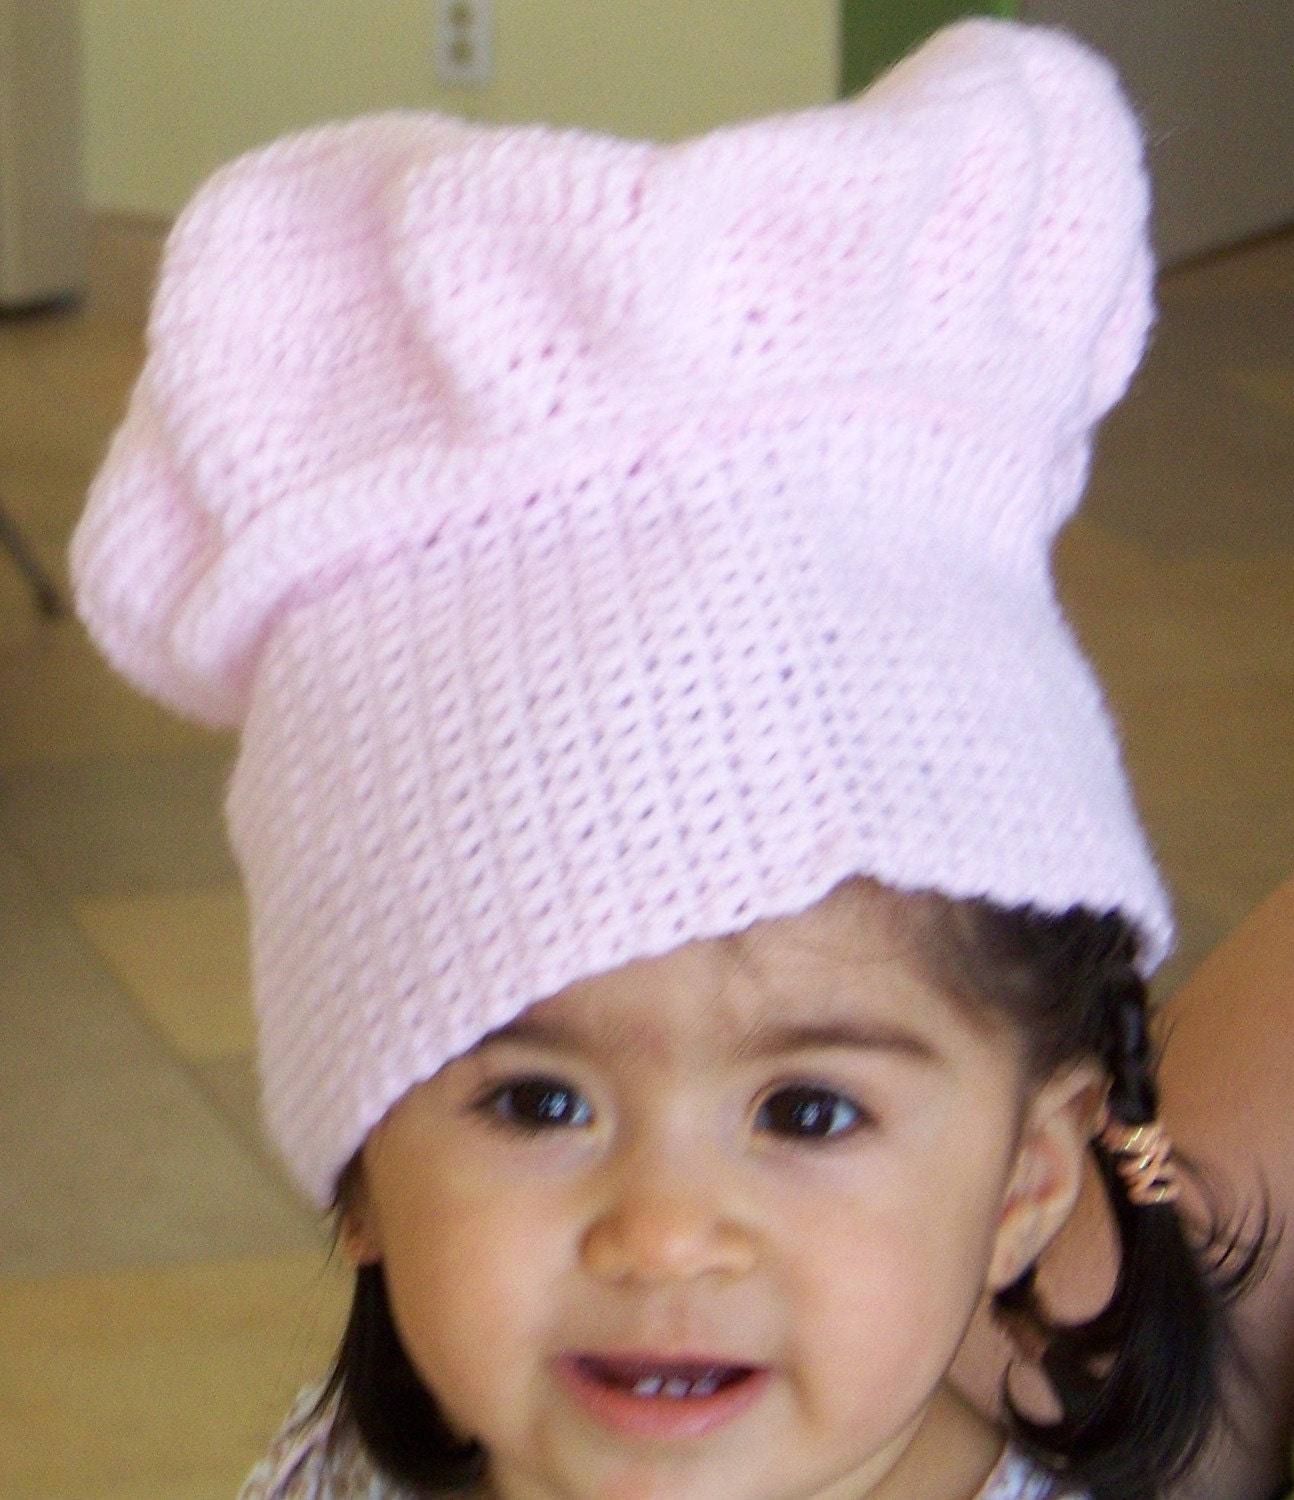 Crochet Pattern Chef Hat : Chef Hat Toddler or Preschooler Crochet PATTERN by MisManos